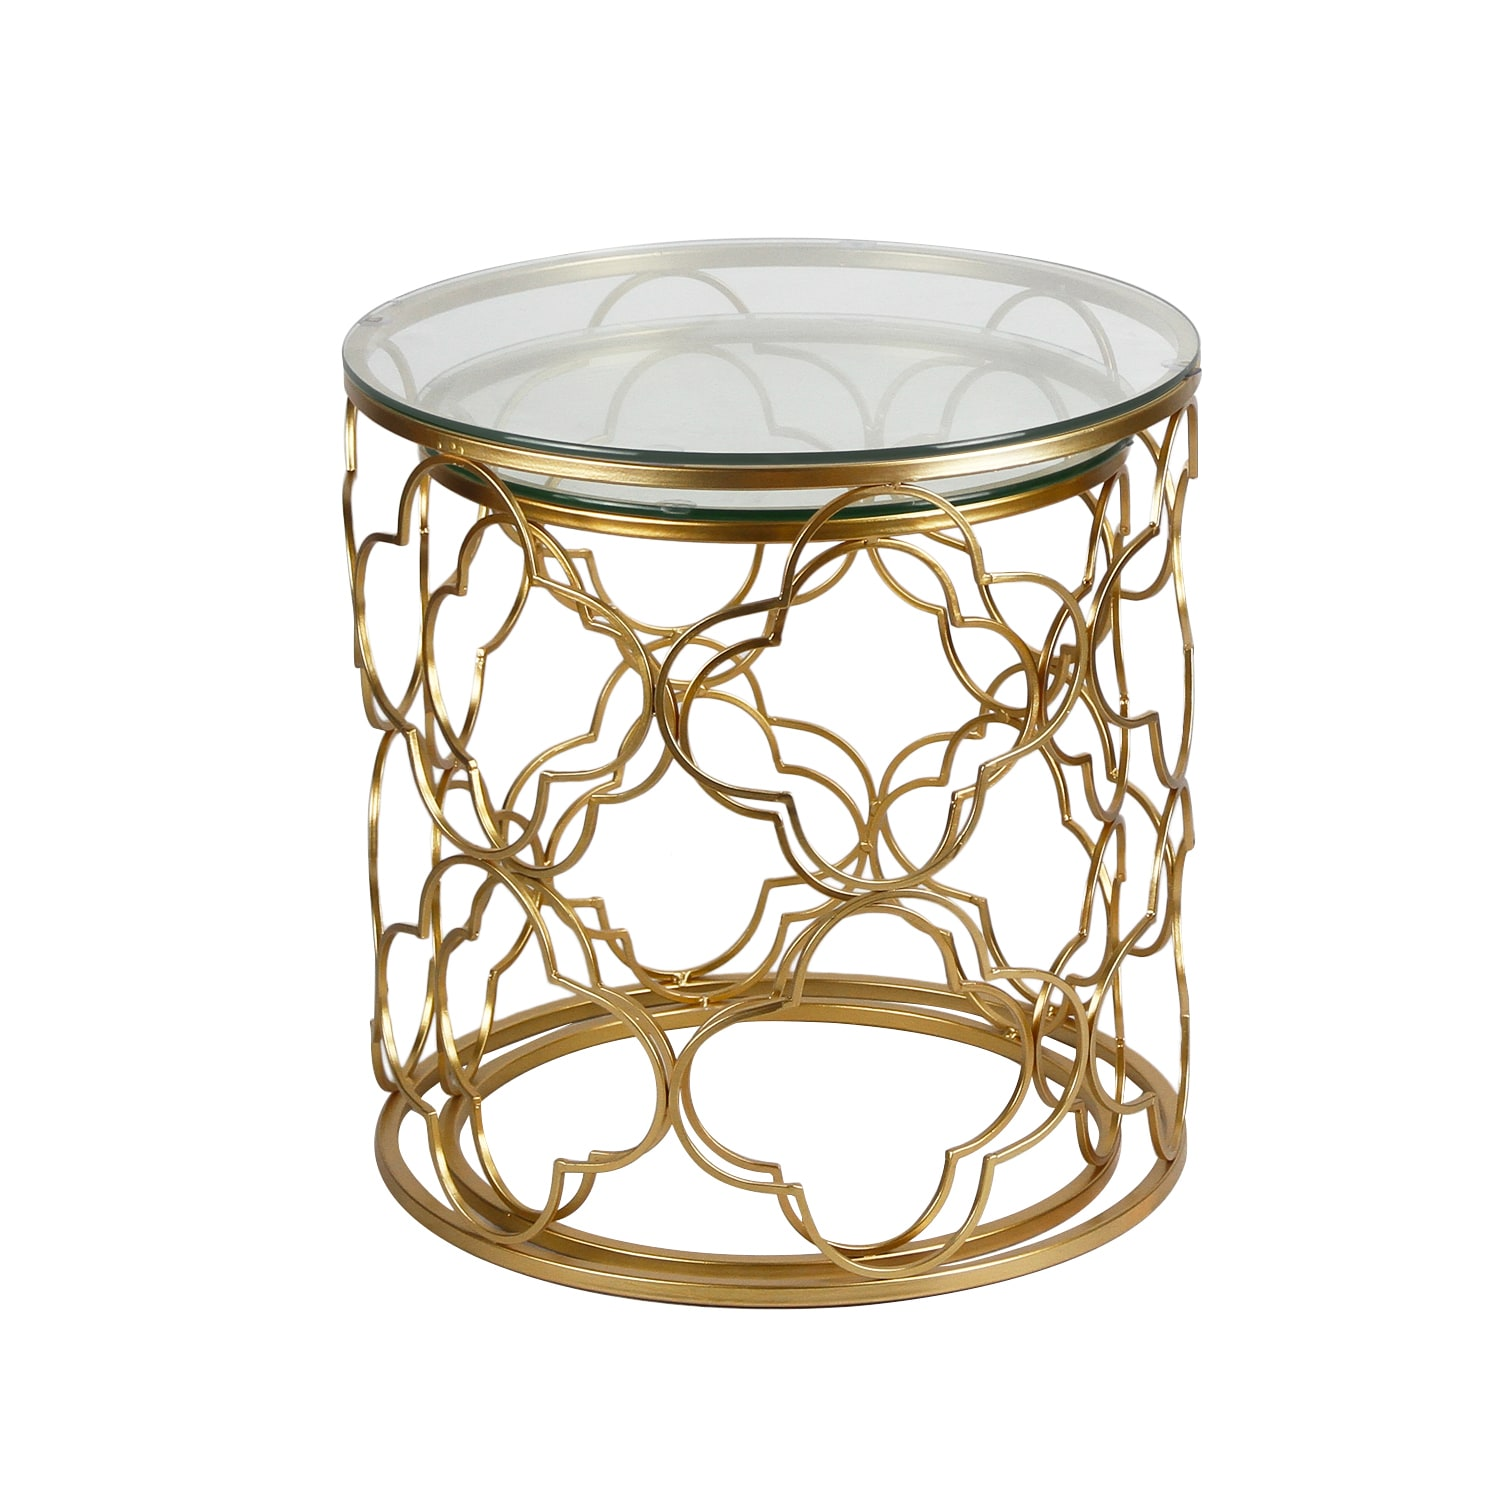 tables coffee side shop based a top linked gold table furniture and with hammered primrose circle metal round plum design